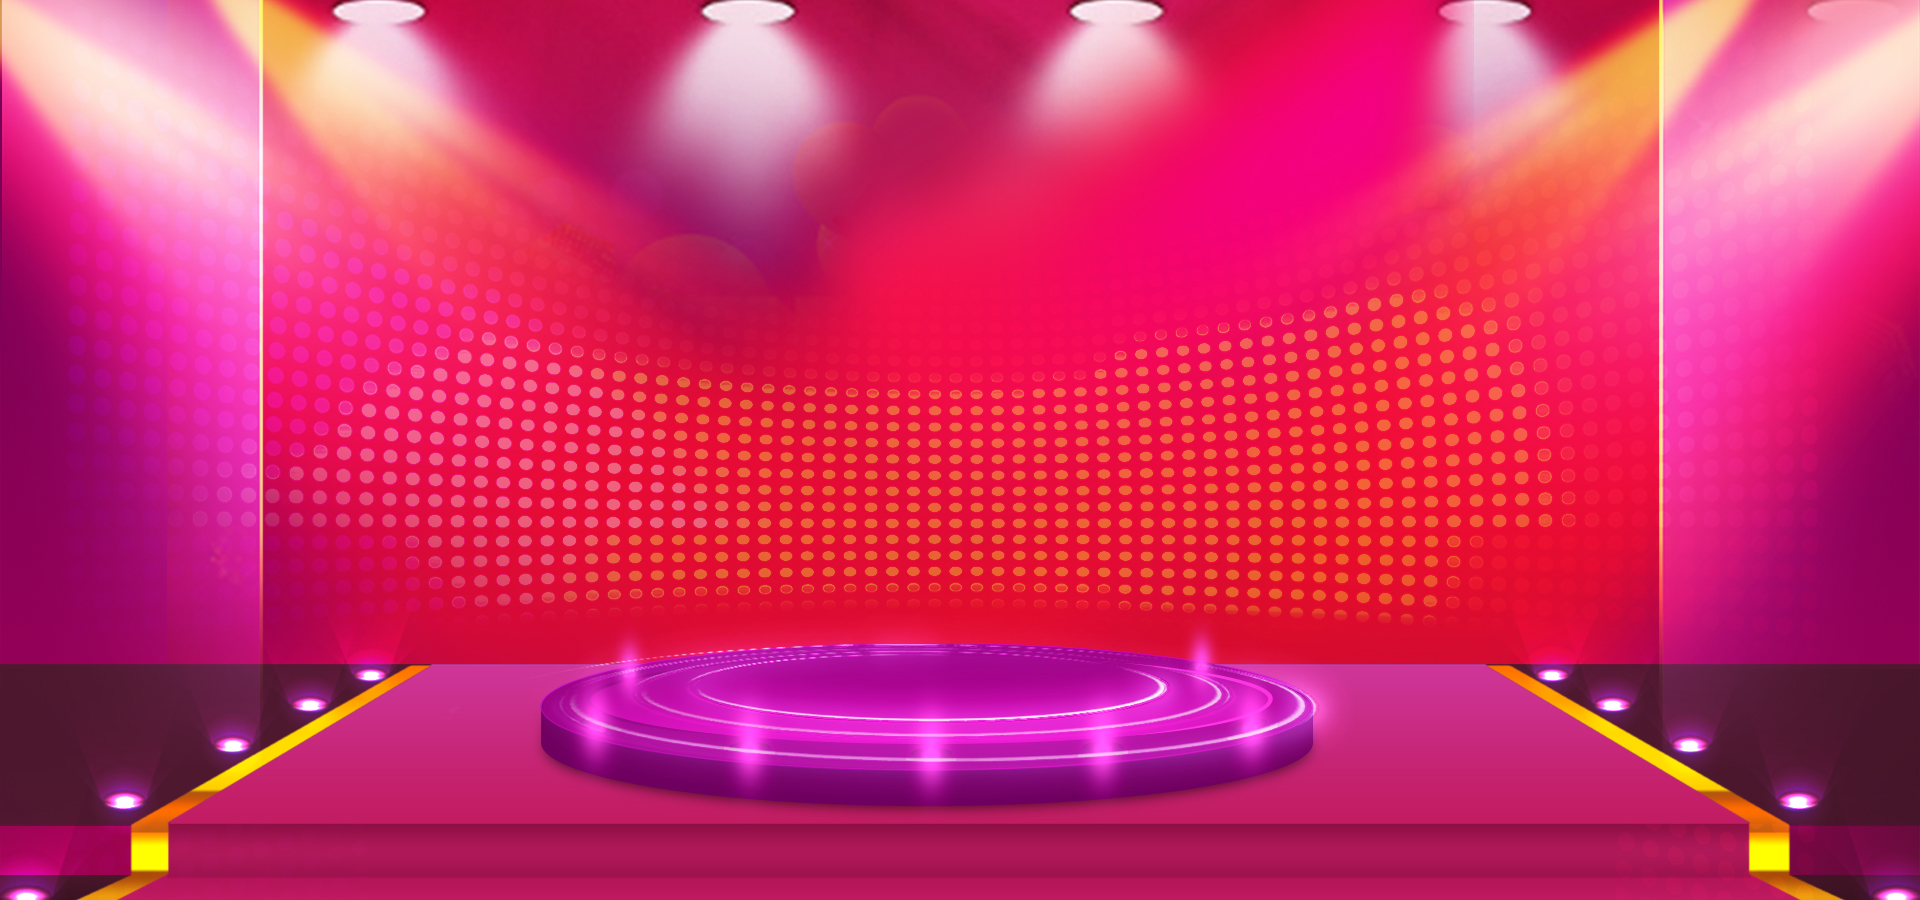 Romantic Fantasy Gradient Background Stage Lighting Taobao Shop Show Effects Image For Free Download